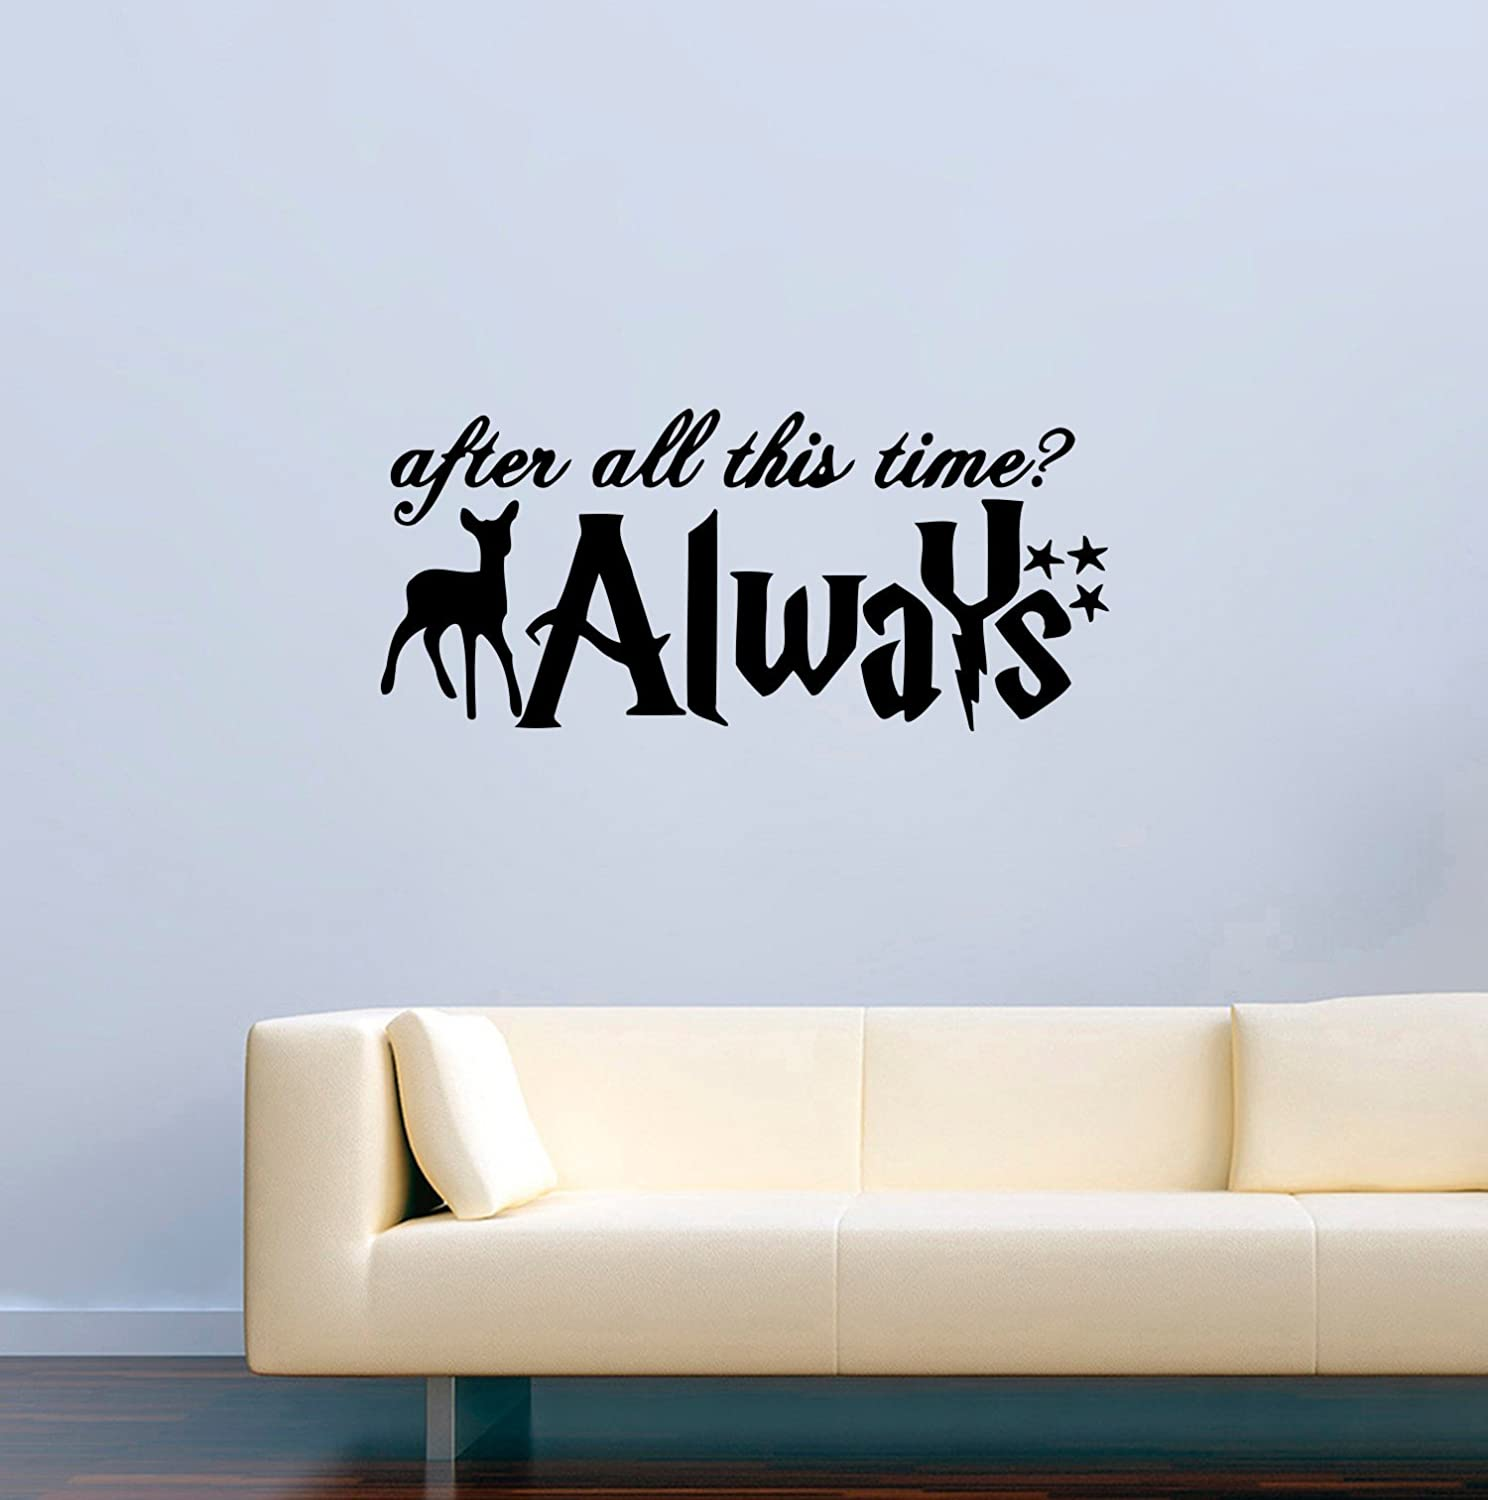 Harry Potter Wall Decals Severus Snape Patronus and Quotes After All This Time Always Decor Stickers Vinyl MK3719